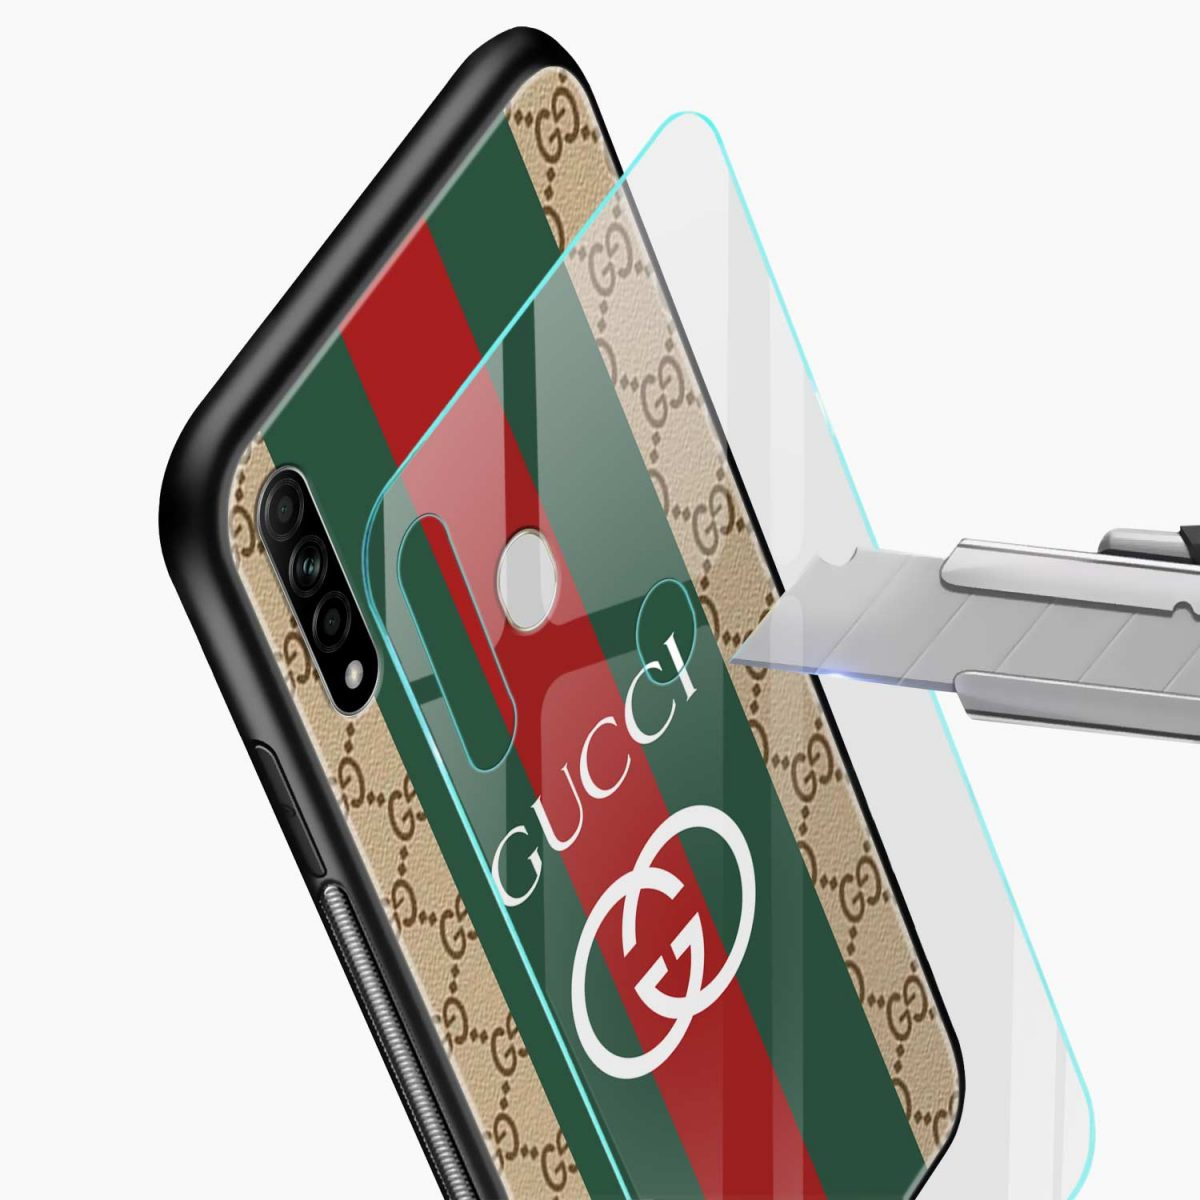 gucci strips pattern glass view oppo a31 back cover